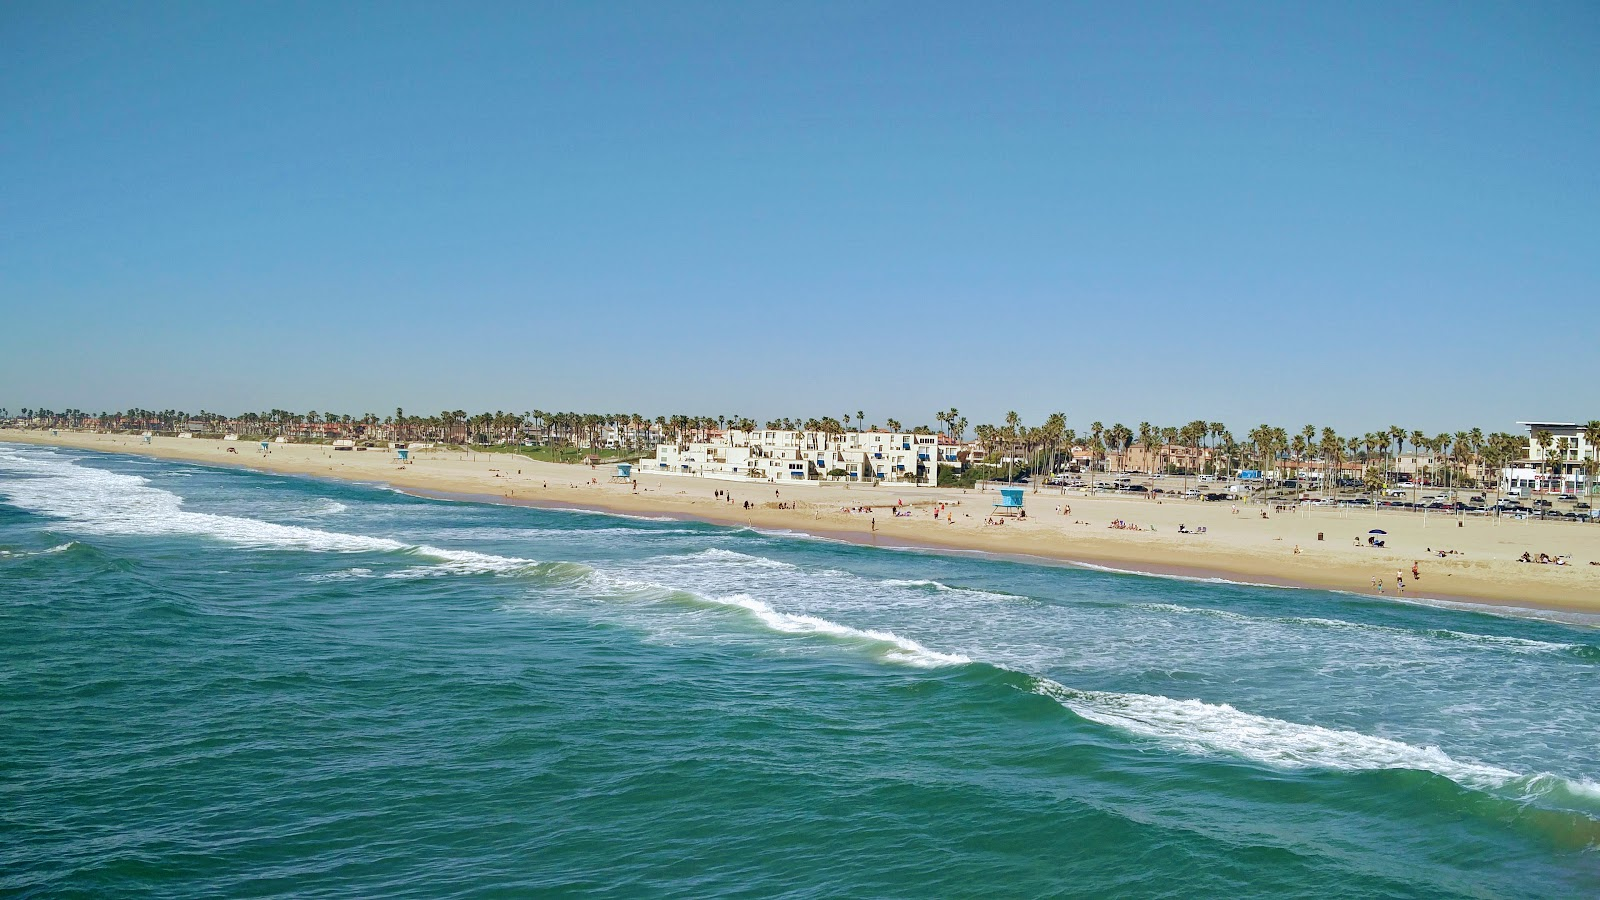 Vacation Home Rentals in Huntington Beach